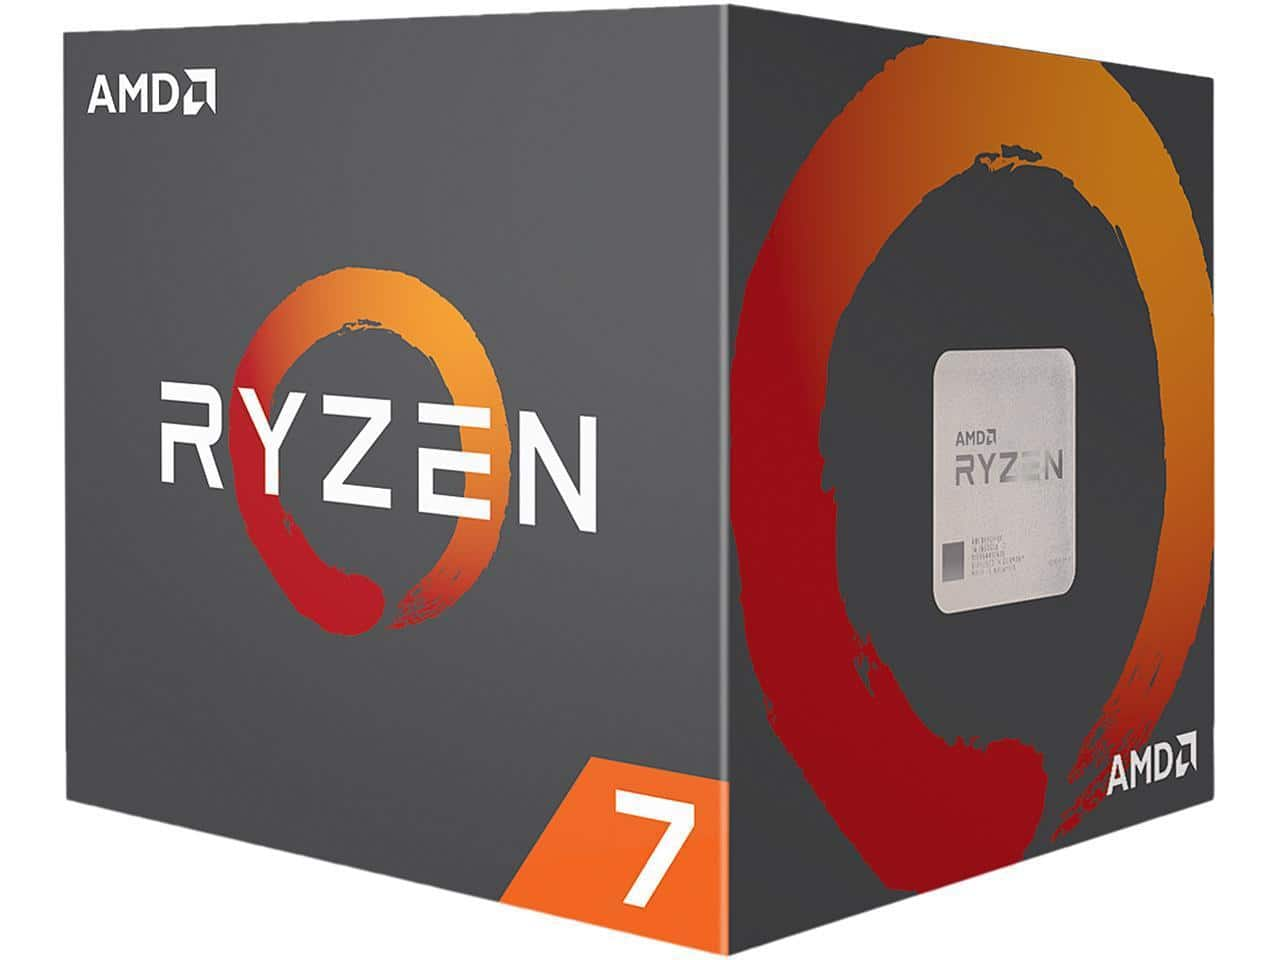 AMD RYZEN 7 2700 8-Core CPU w/Wraith Spire (LED) Cooler 65W AC $220 @Newegg